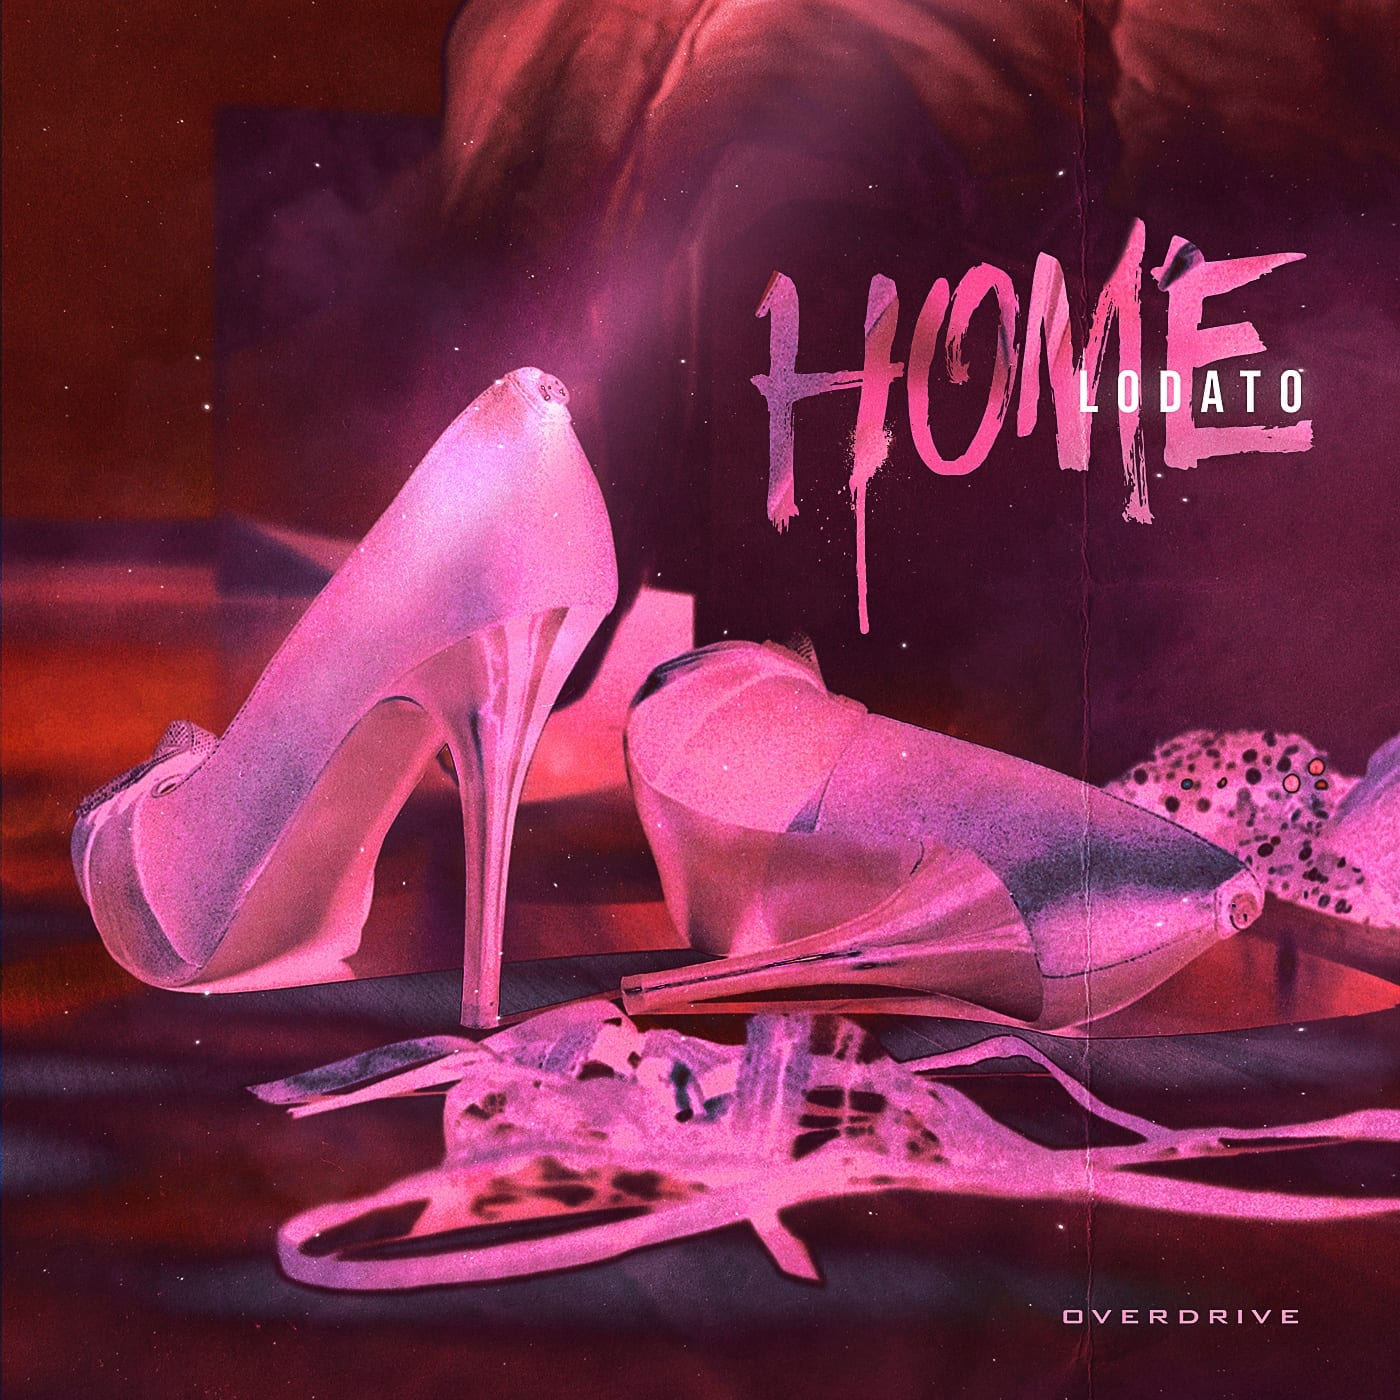 LODATO IS BACK WITH SUMMER BANGER 'HOME' ON OVERDRIVE RECORDS